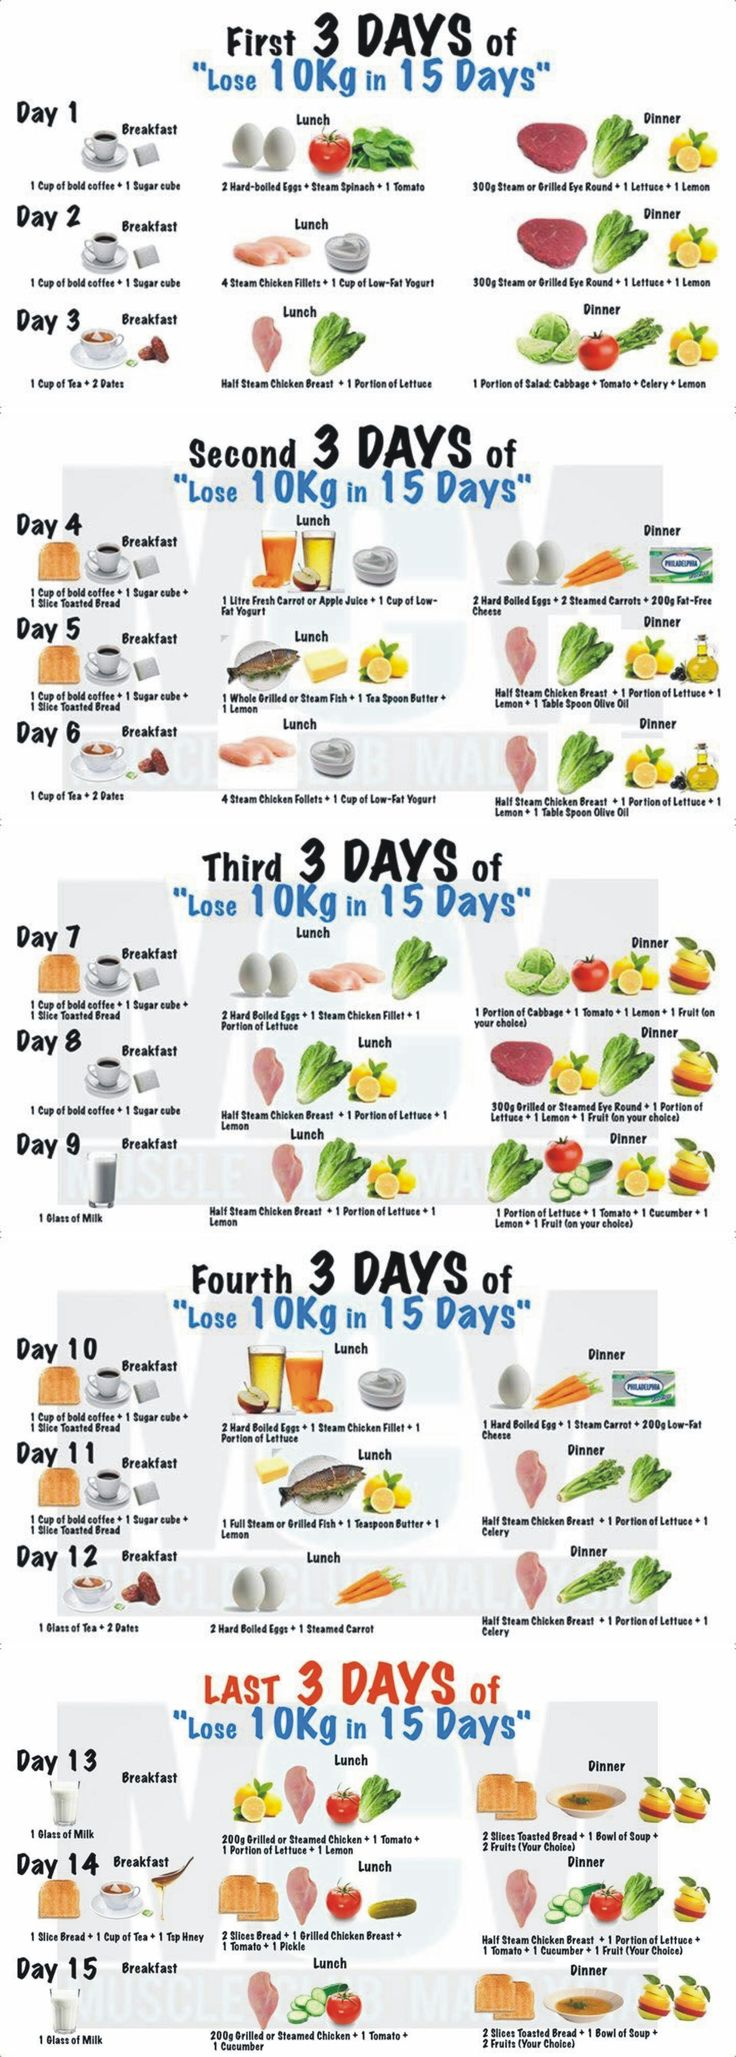 4 Day Diet Plans: Is It Possible To Lose 10 Kg In 30 Days?